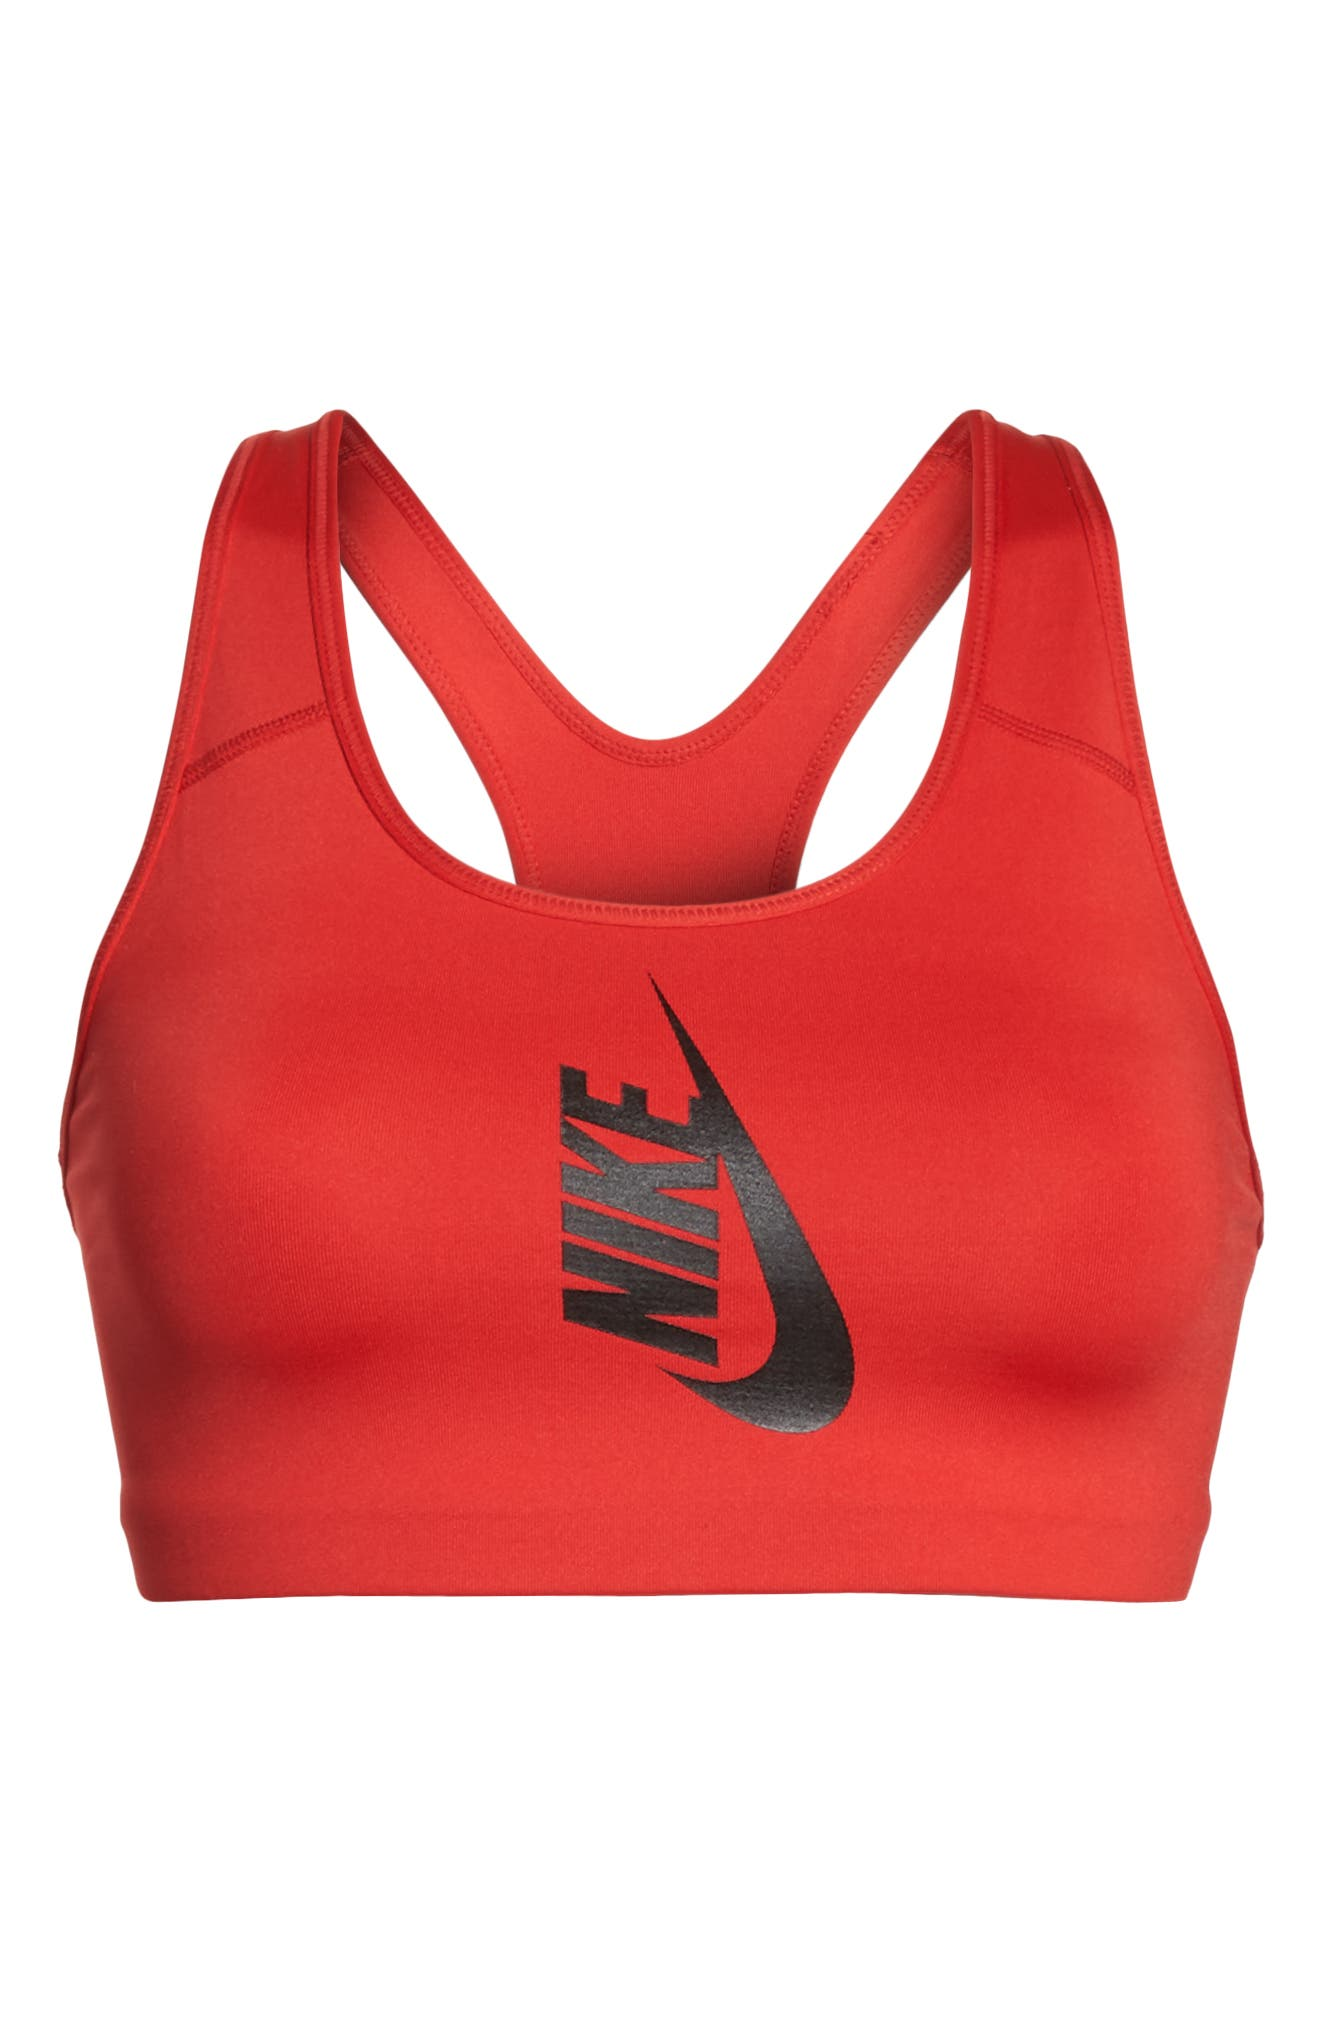 NikeLab Sports Bra,                             Alternate thumbnail 7, color,                             University Red/ Black